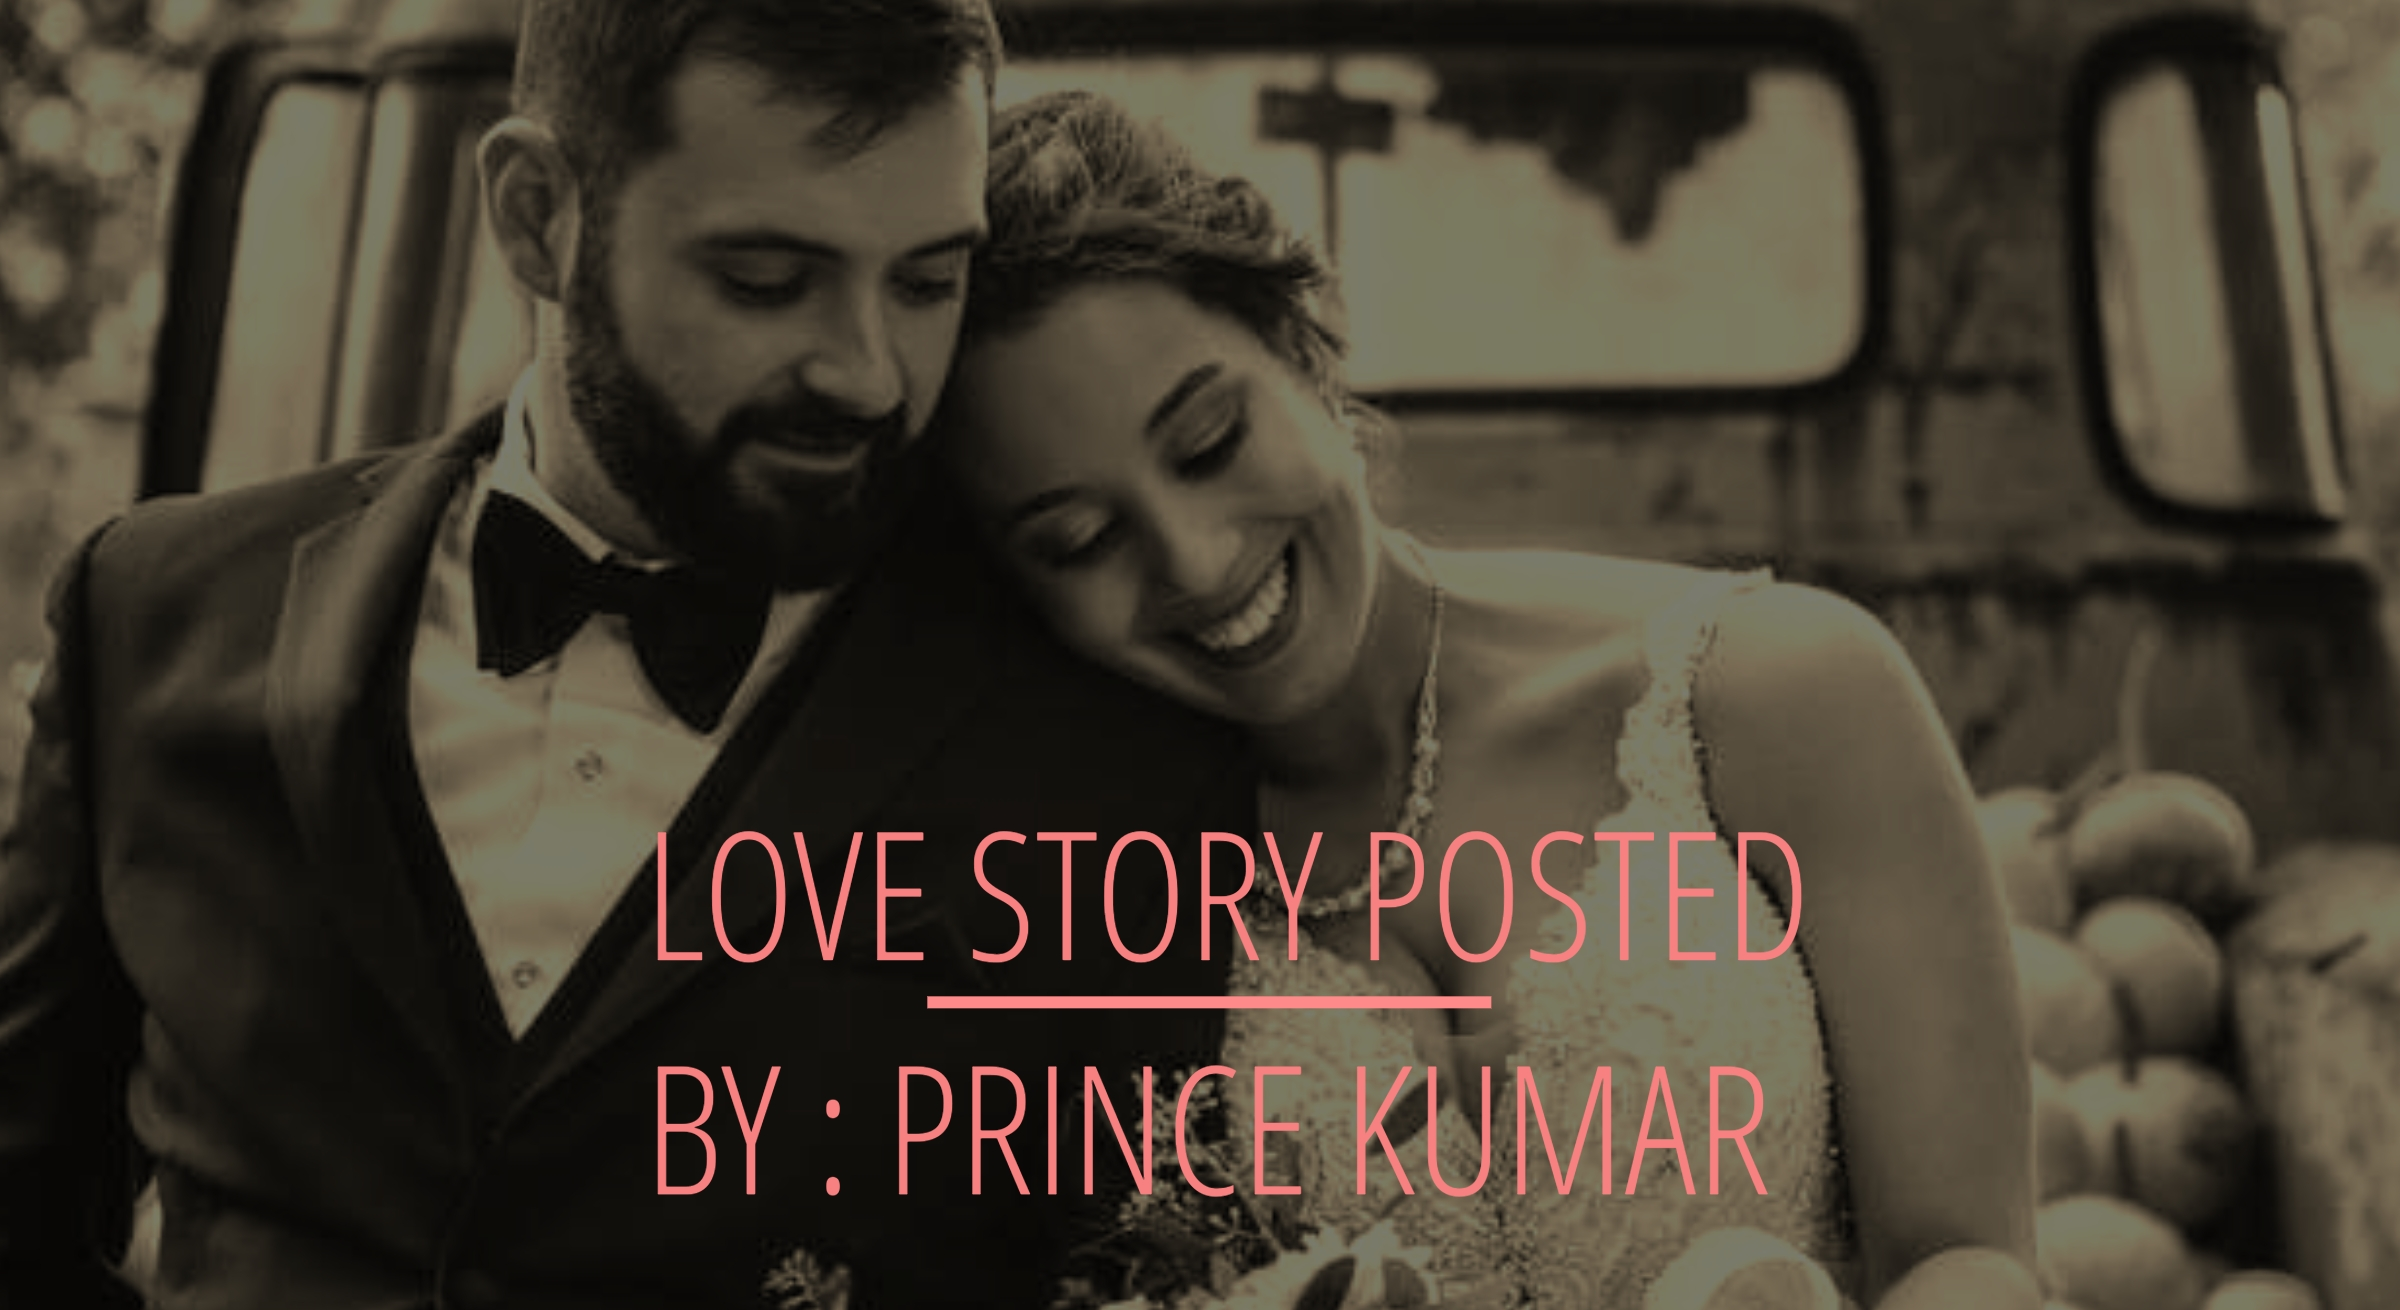 2. LOVE STORY POSTED BY PRINCE KUMAR